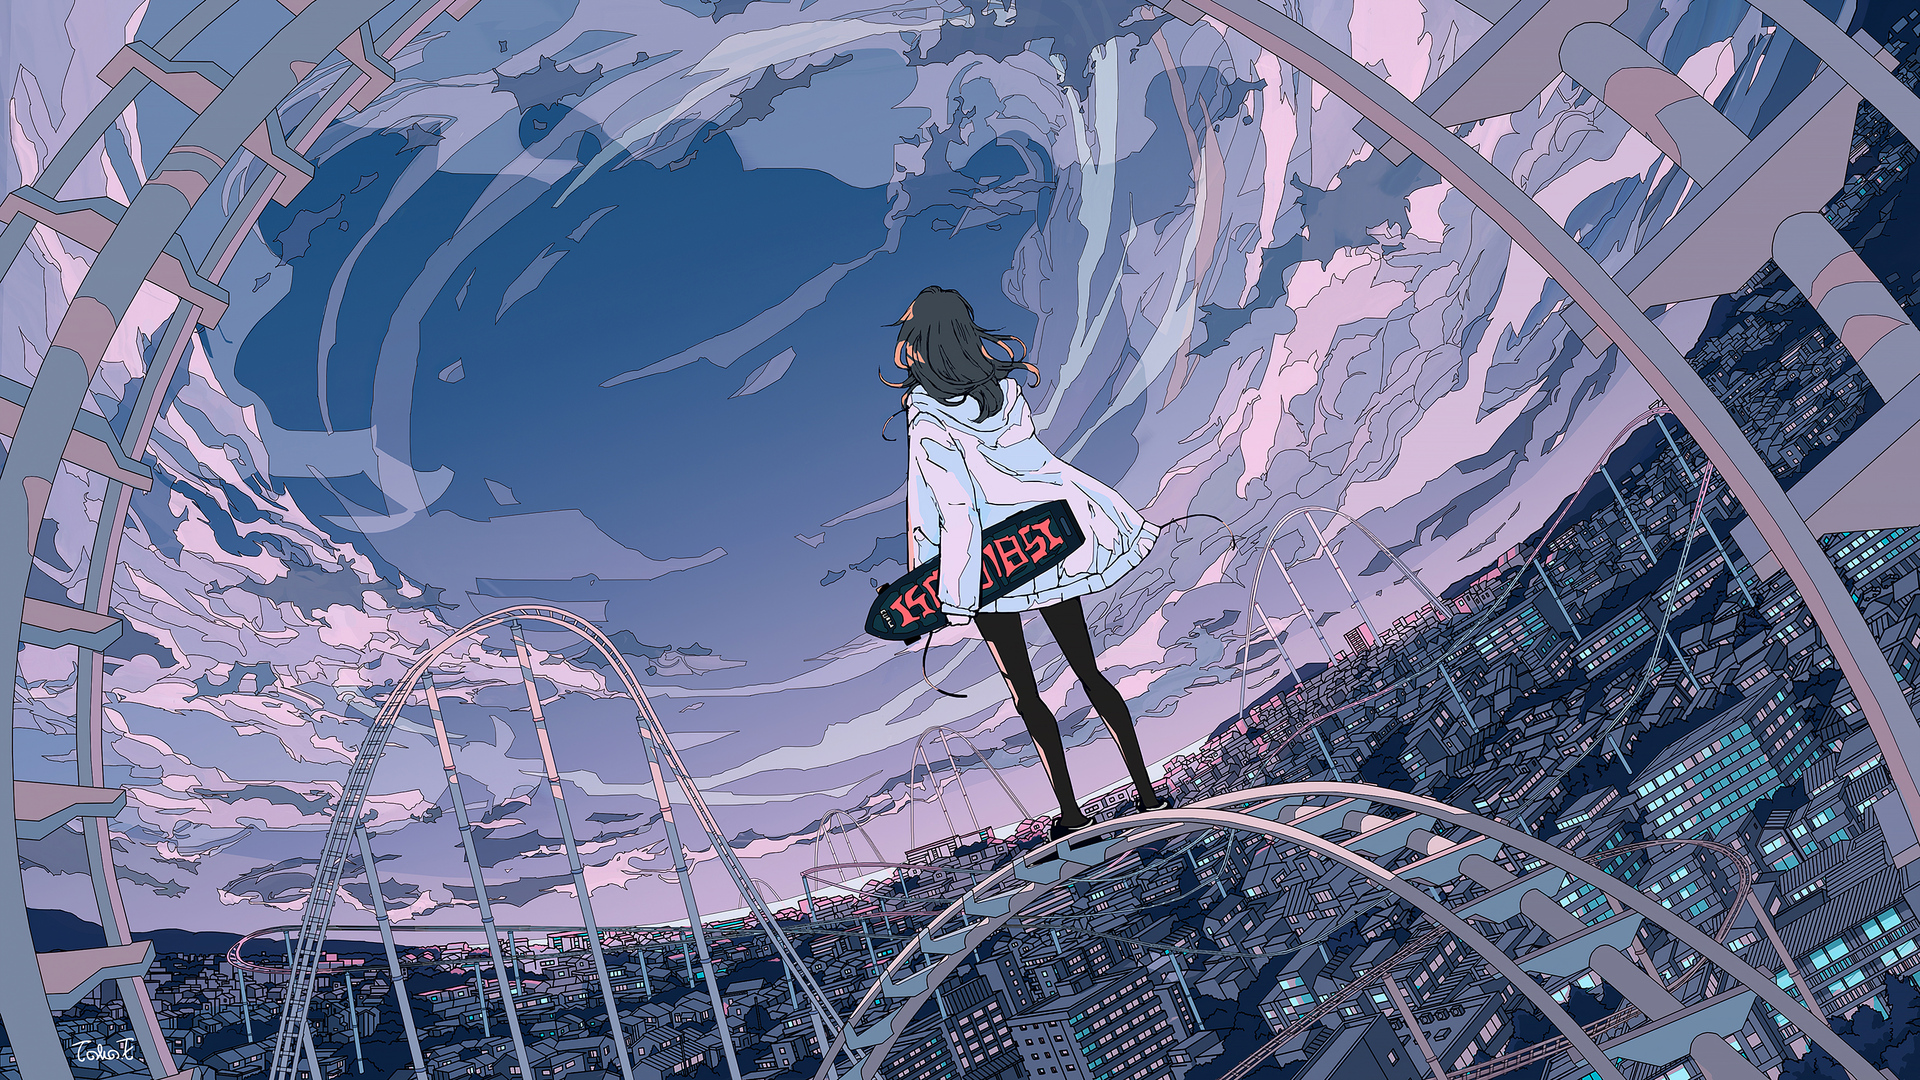 1920x1080 Skyline Anime Girl Skateboard 5k Laptop Full Hd 1080p Hd 4k Wallpapers Images Backgrounds Photos And Pictures